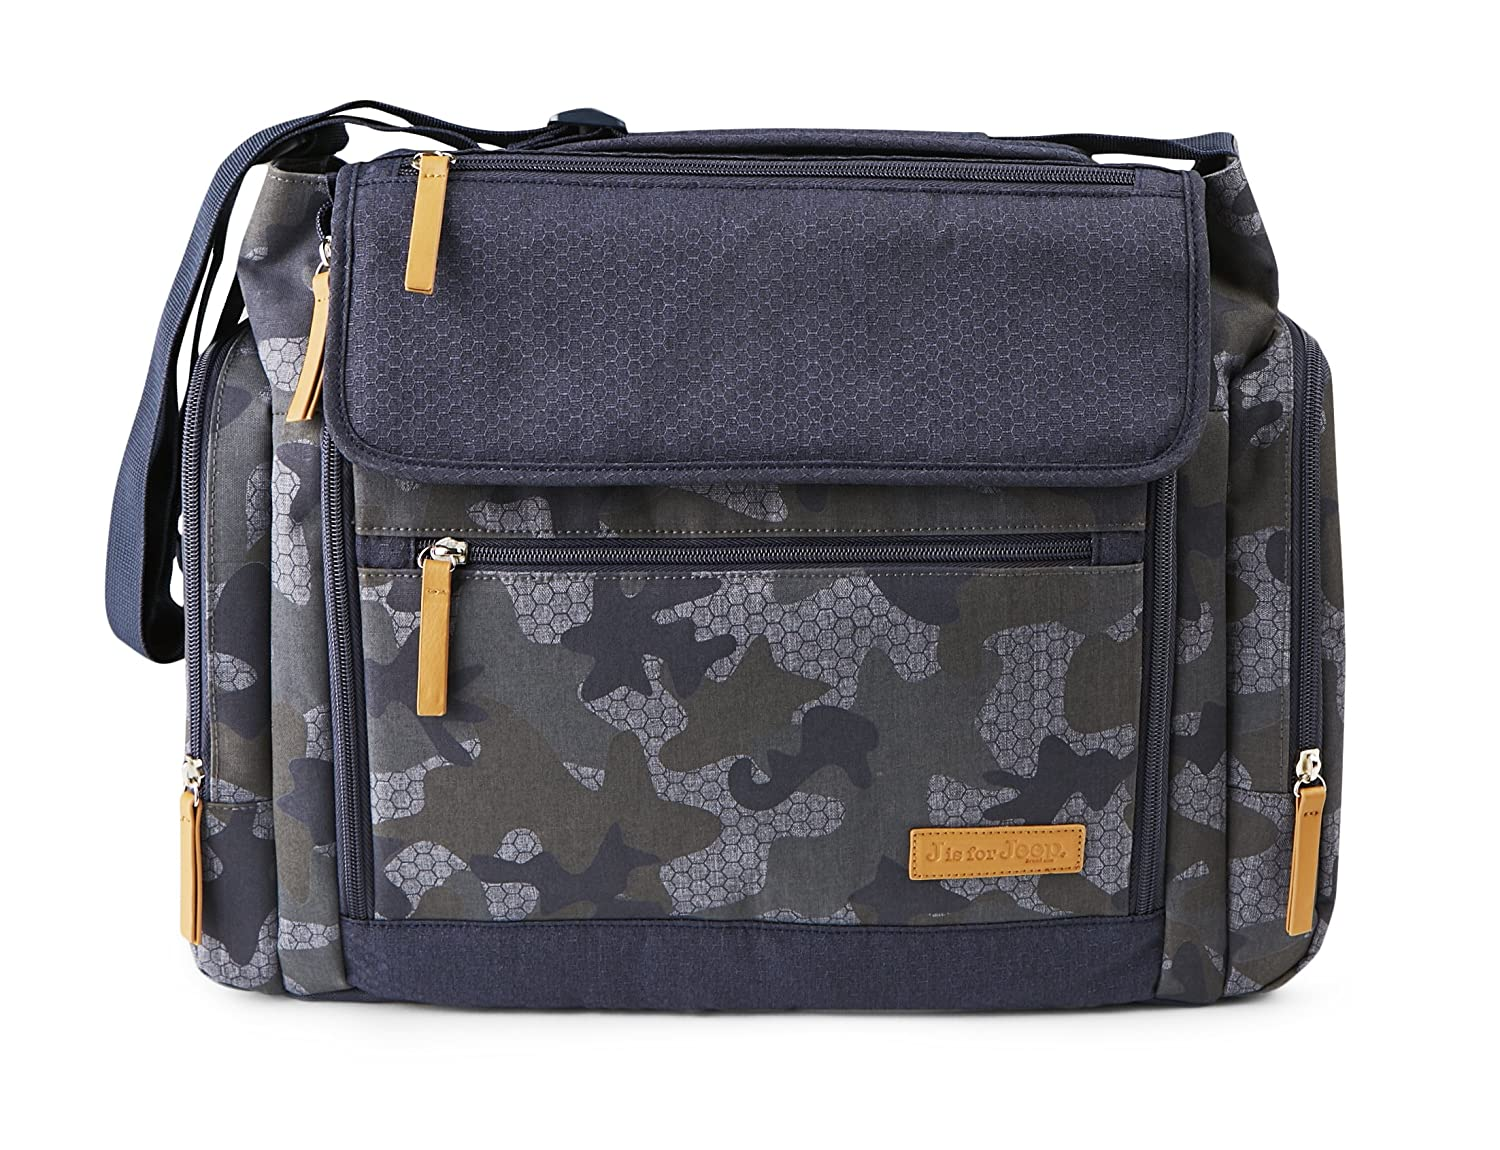 f6fbeb79be Amazon.com   J Is For Jeep Large Diaper Duffel Messenger Bag Combo - Roomy  Design - Camouflage   Baby